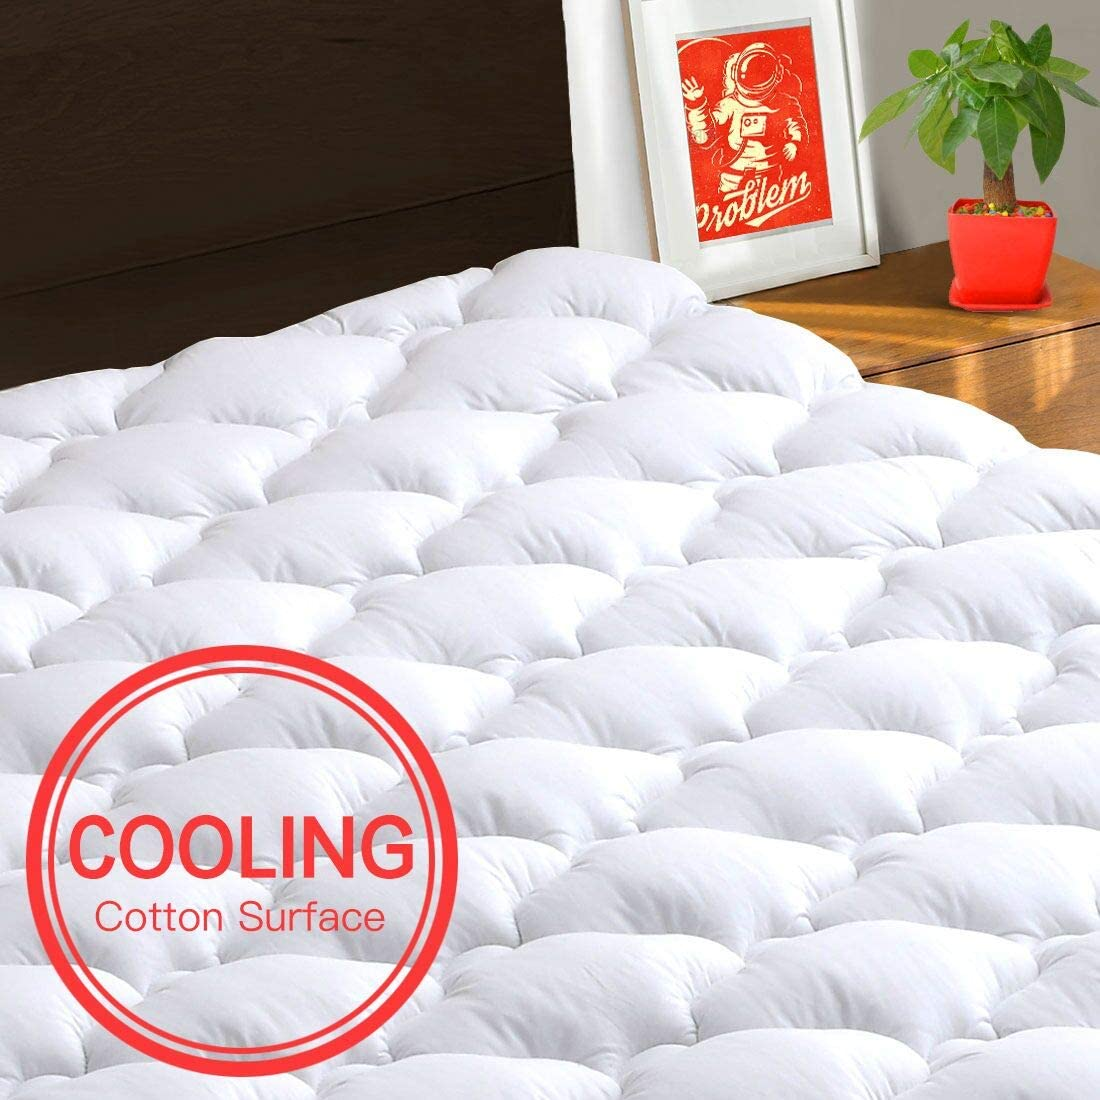 TEXARTIST Mattress Pad